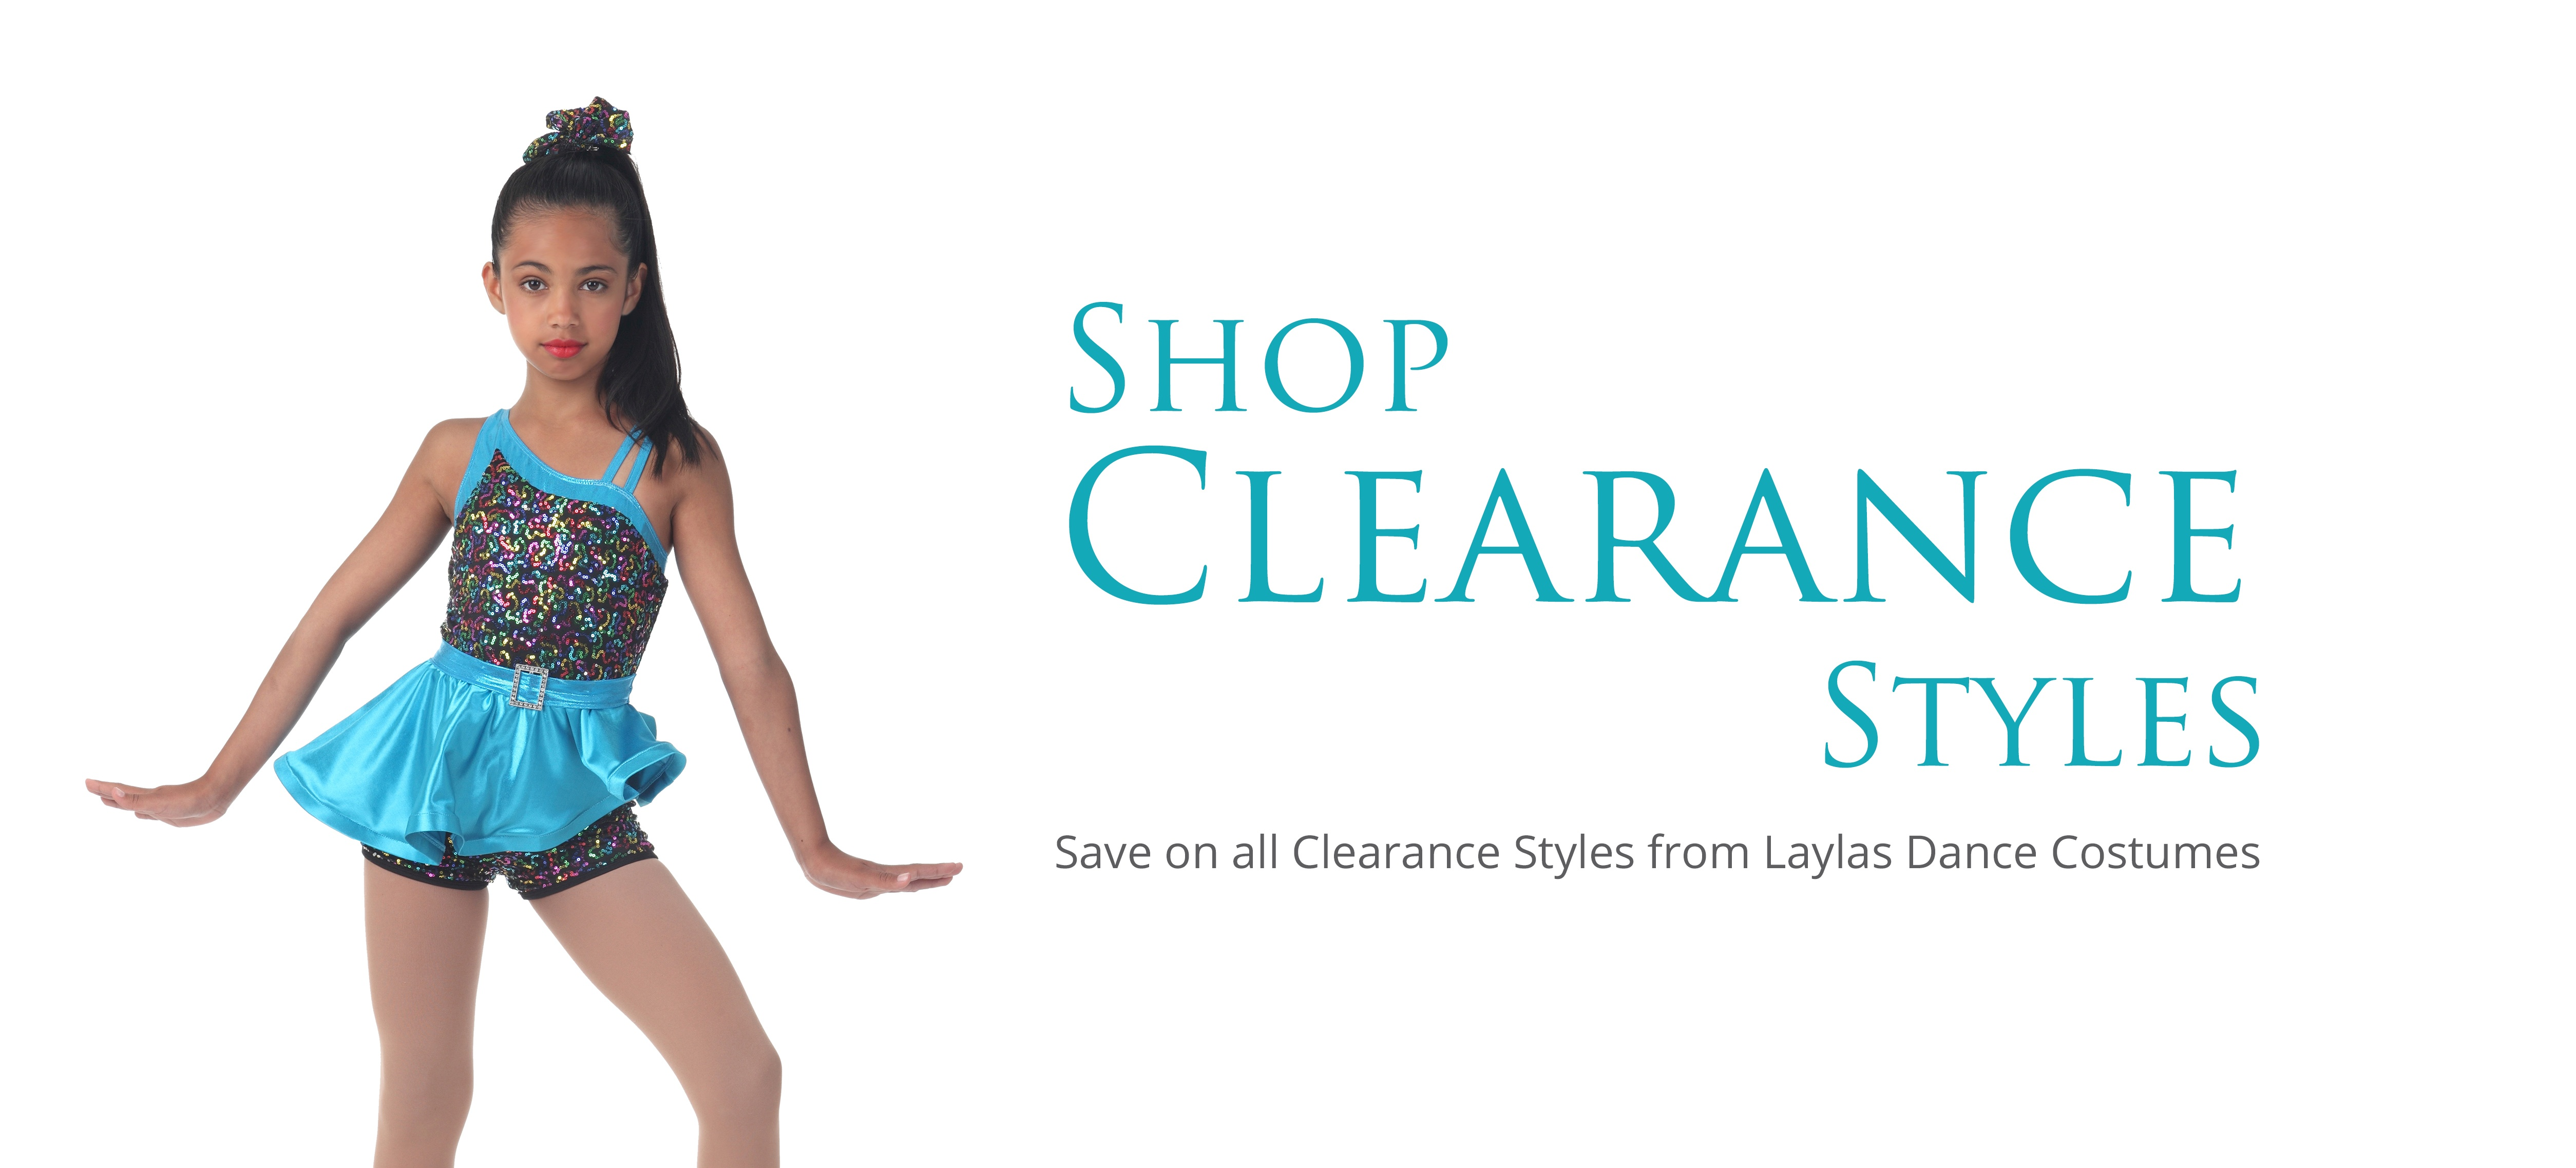 Laylas Clearance at Amazing prices